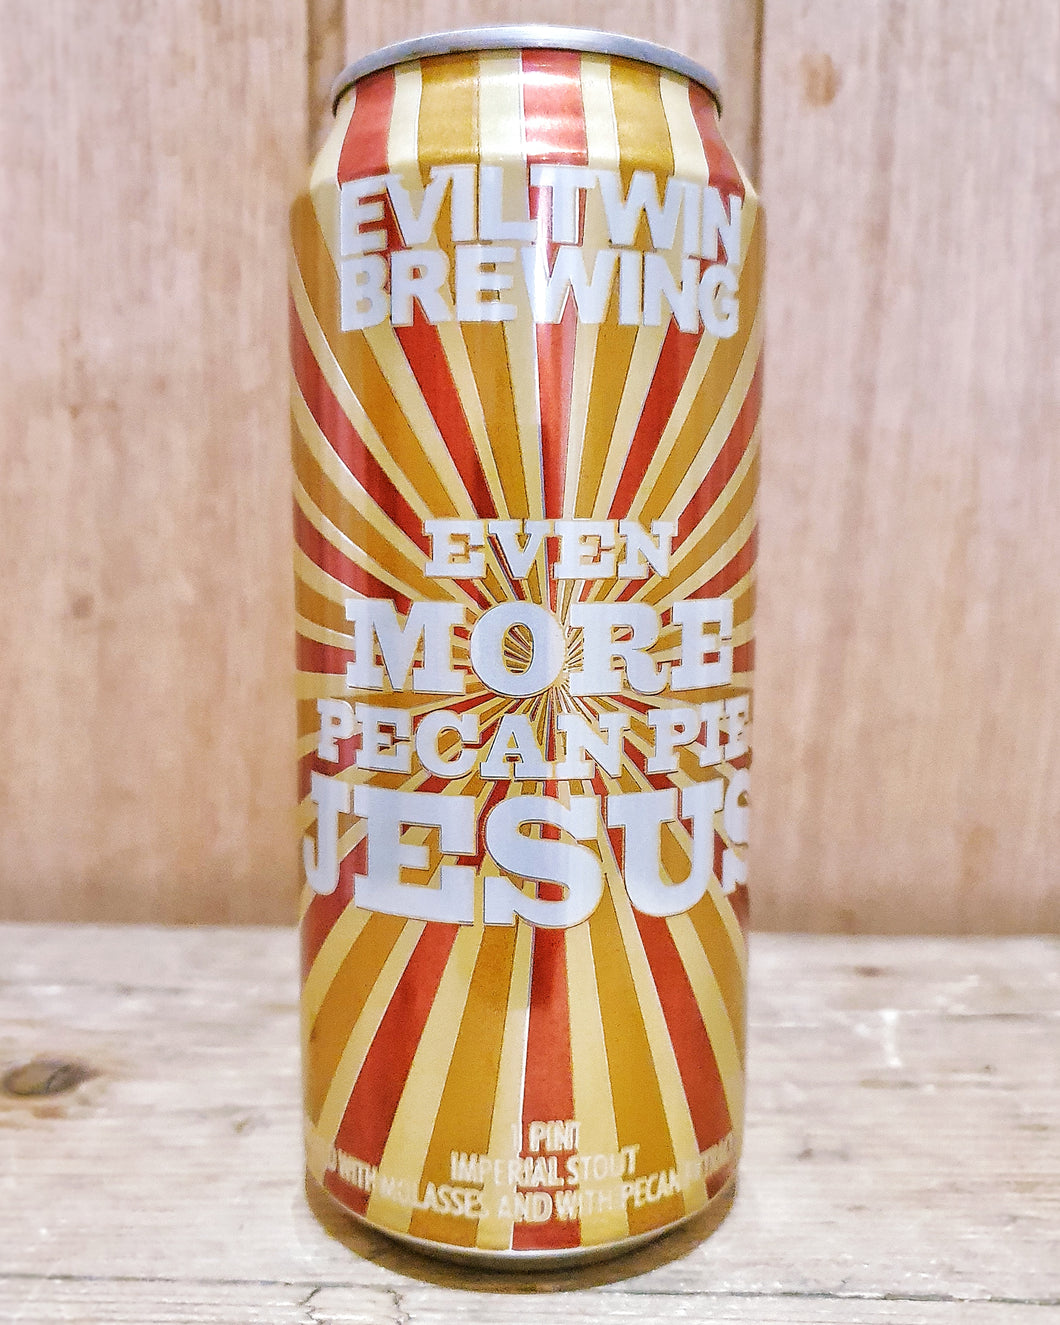 Evil Twin Brewing - Even More Pecan Pie Jesus